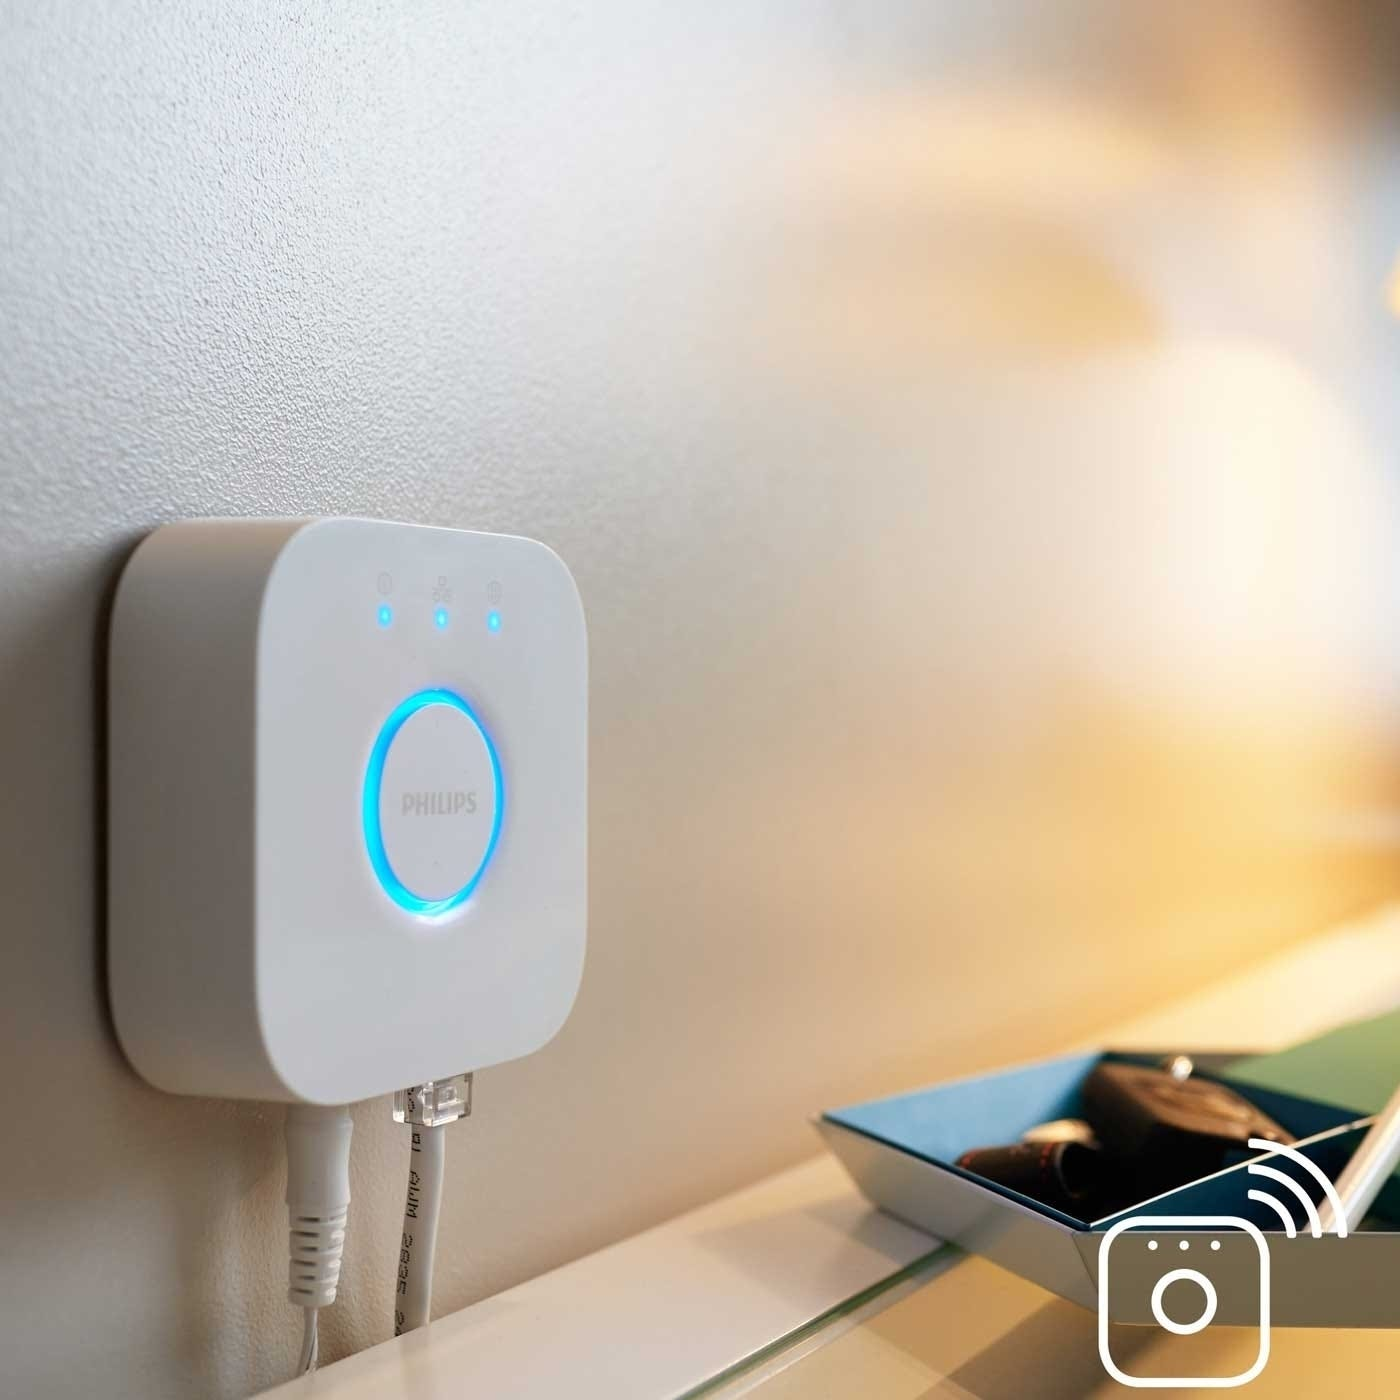 The hue bridge is all you need to set up your Philips Hue system.